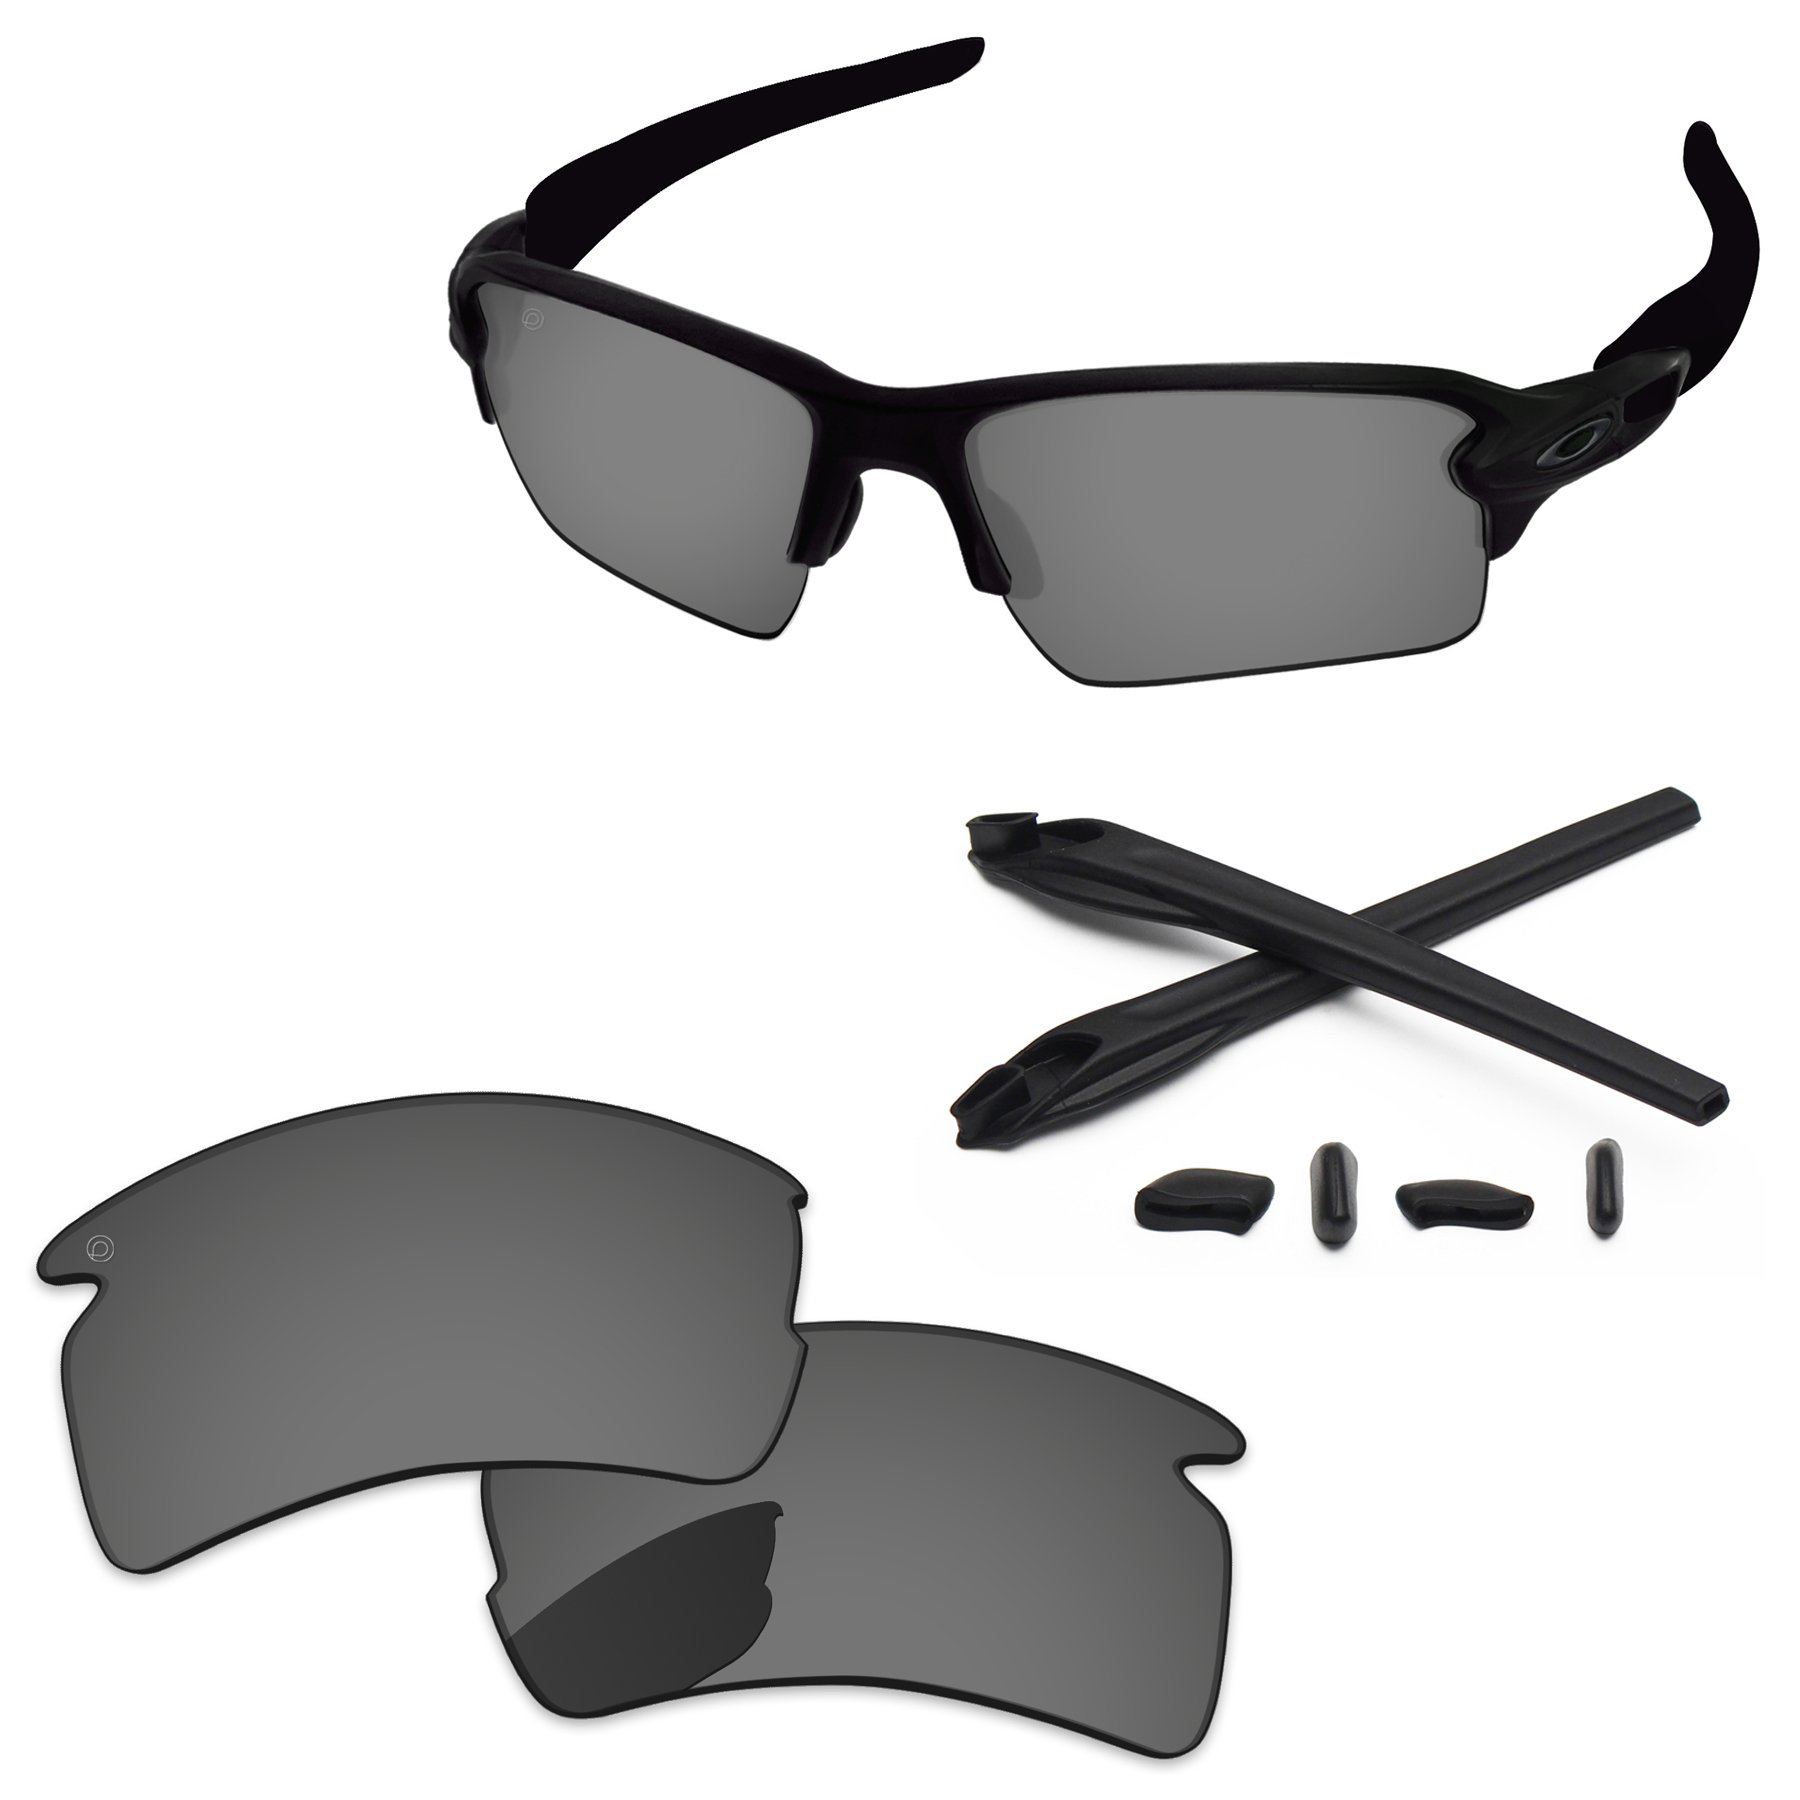 PapaViva Replacement Lenses & Rubber Kits for Oakley Flak 2.0 XL Pro+ Black Chrome Polarized